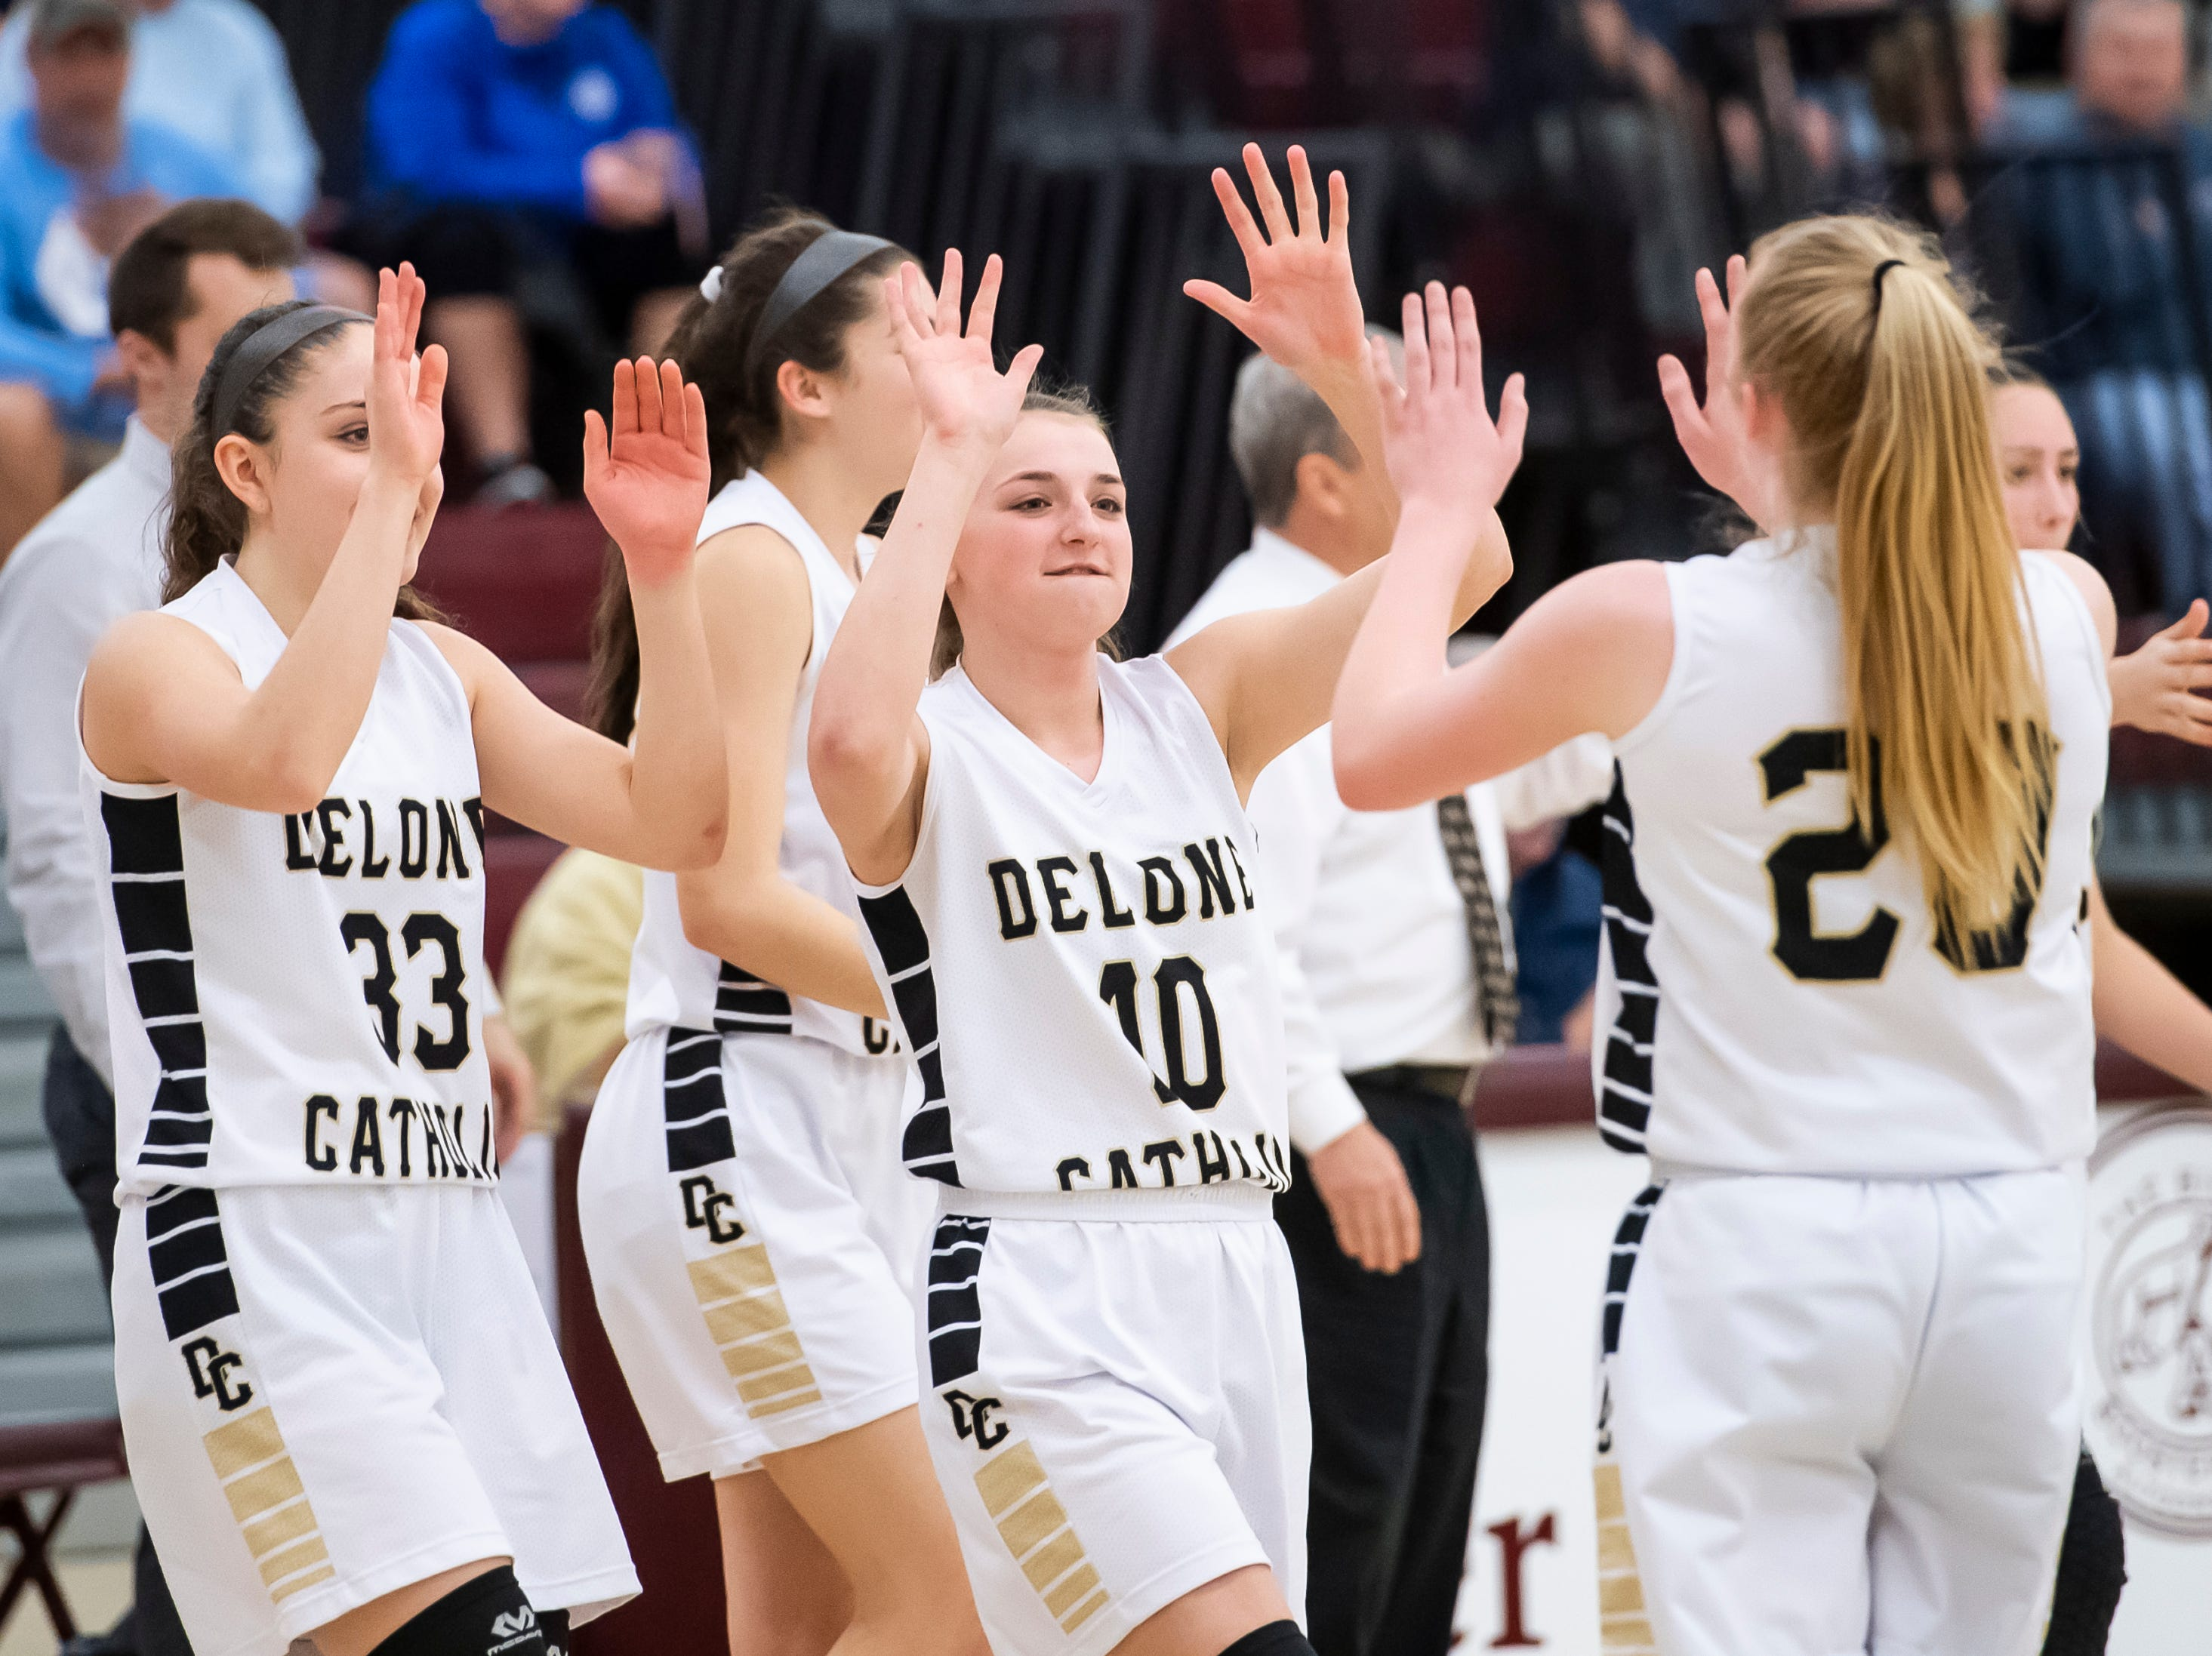 Delone Catholic players enter a timeout late in the fourth quarter against Neshannock during a PIAA 3A quarterfinal in Altoona, Pa., on Friday, March 15, 2019. The Squirettes won 50-41.